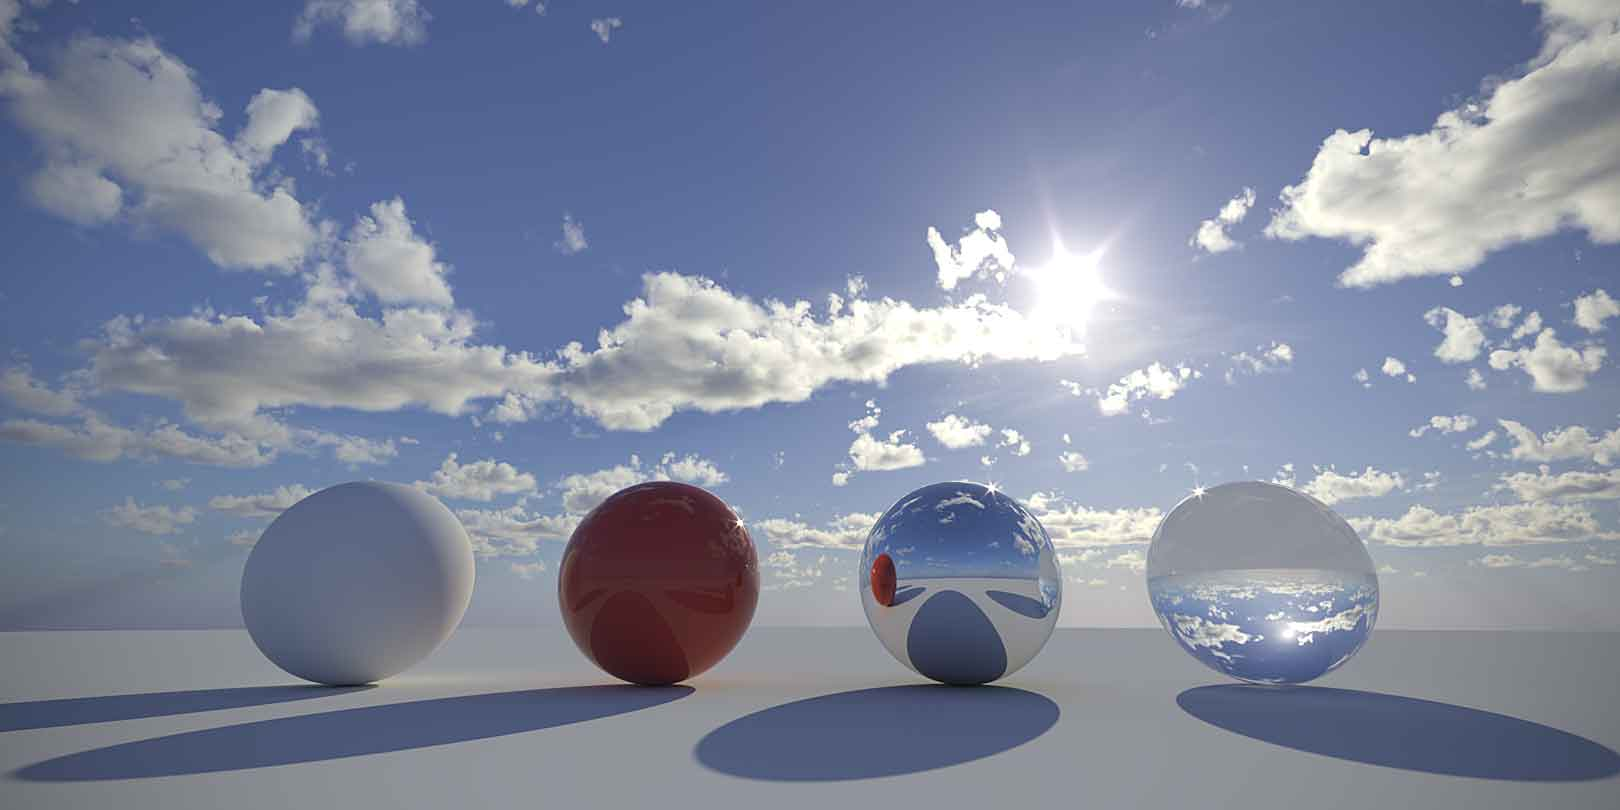 CG HDRI / Perfect Clouds from helloluxx by Shawn Astrom